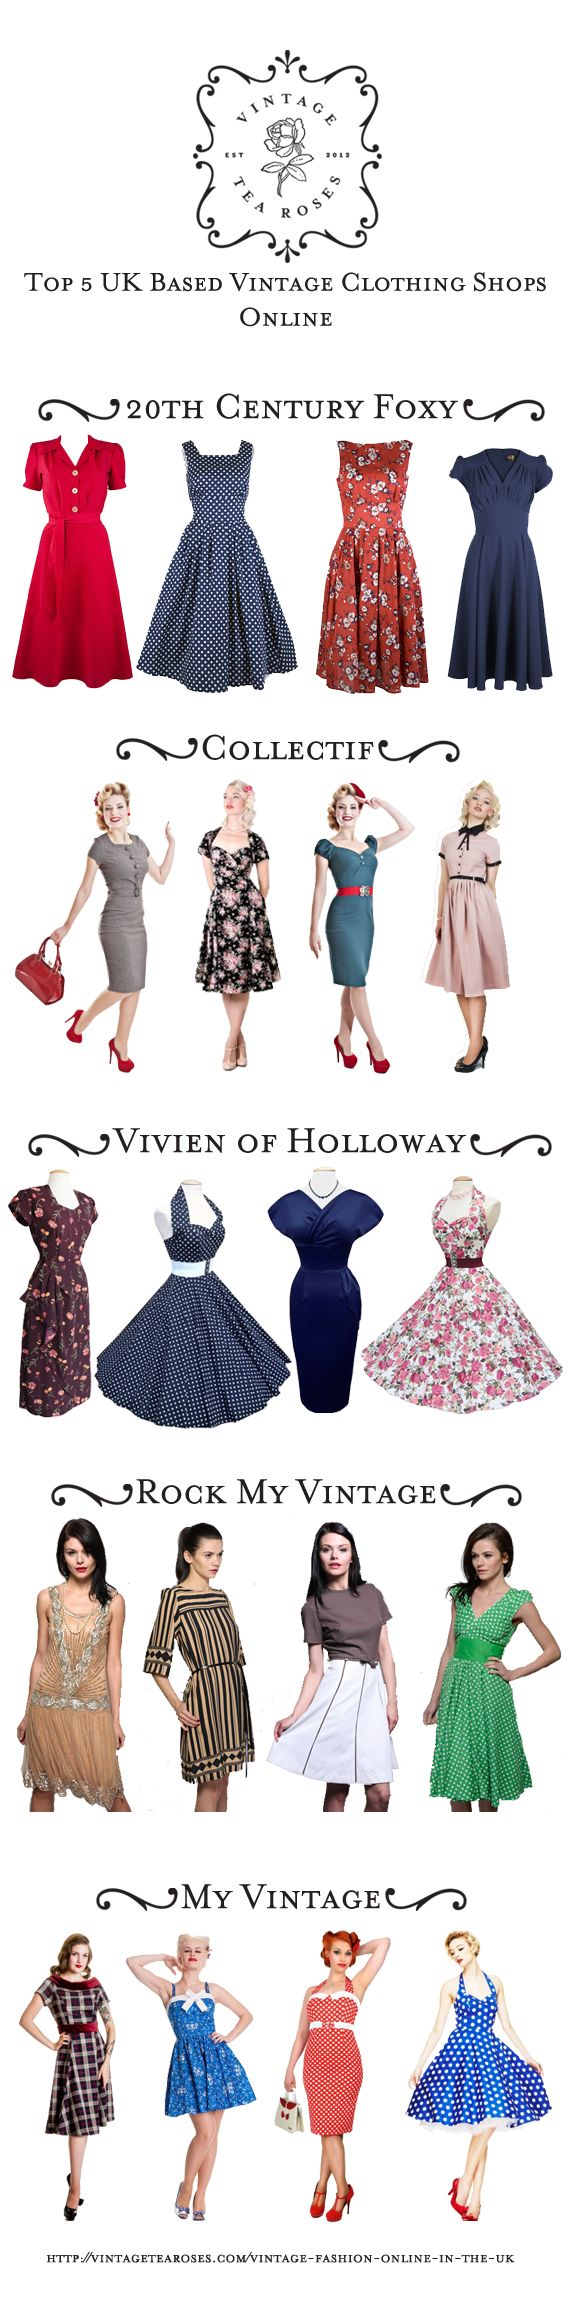 Top Vintage Clothing Shops Online in the UK http://vintagetearoses.com/vintage-fashion-online-in-the-uk/ #vintage #fashion